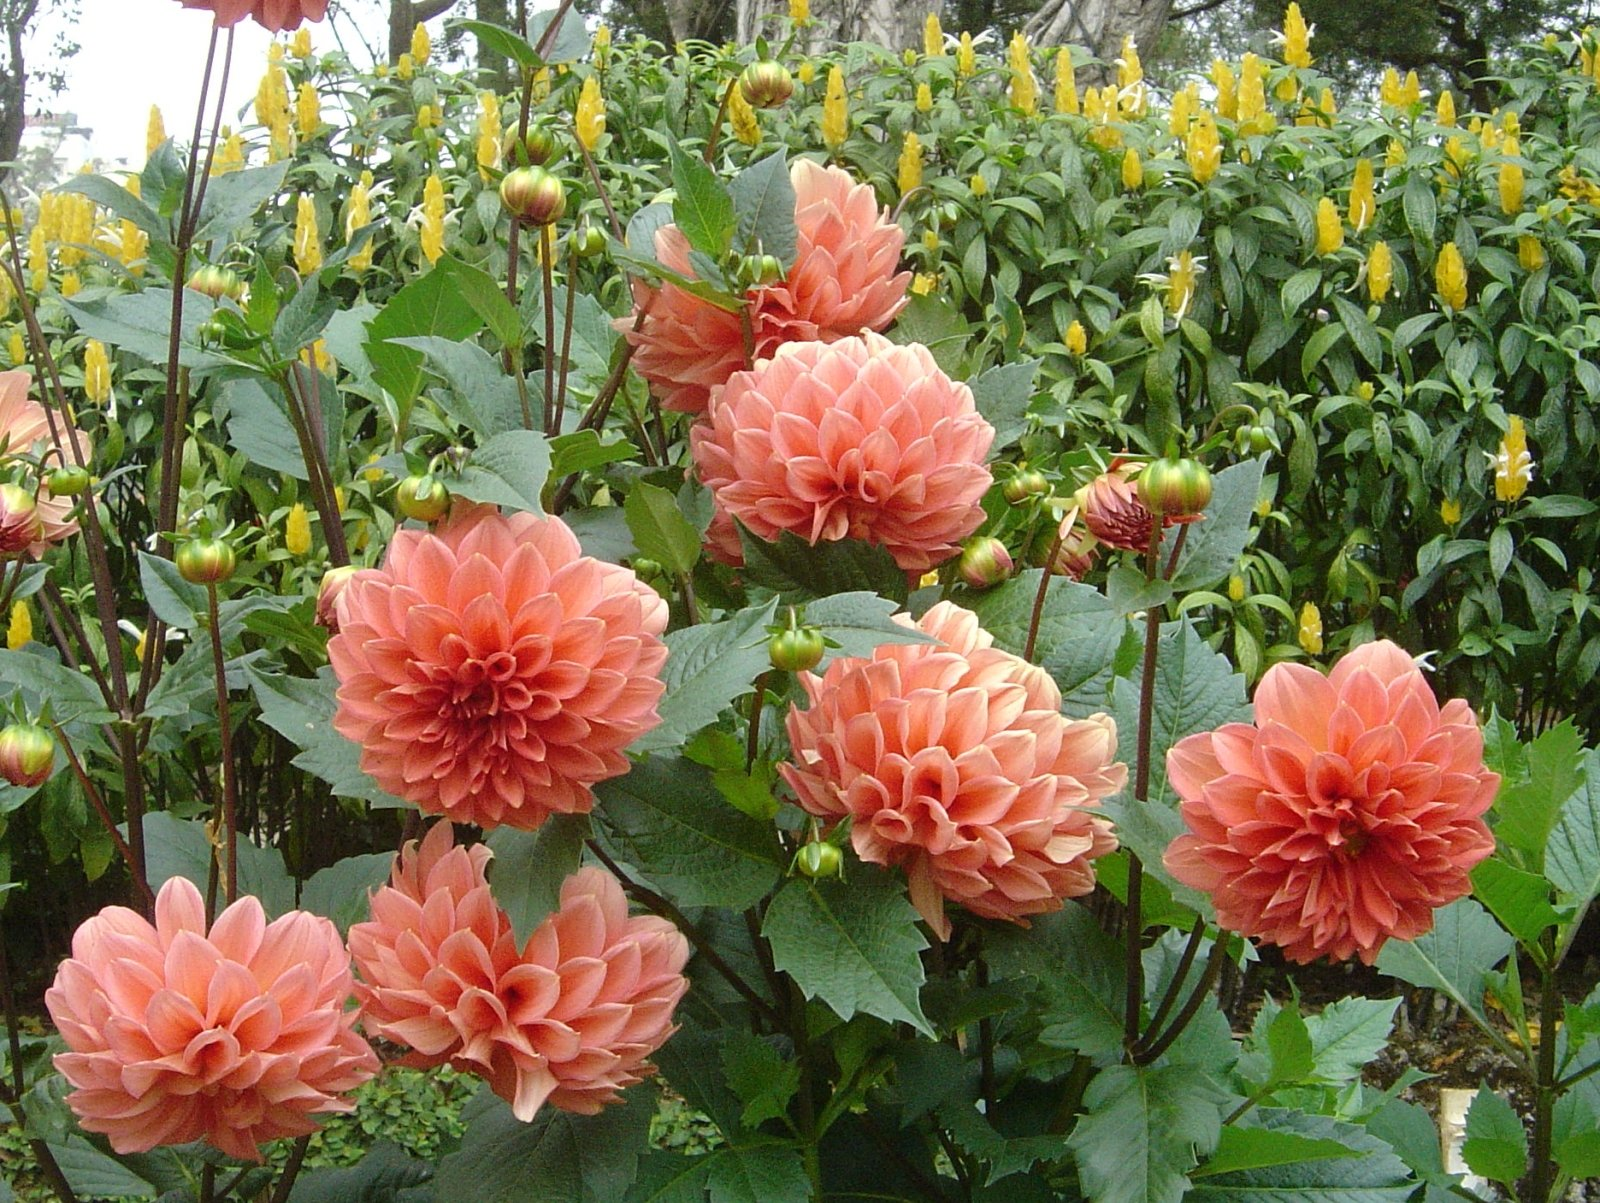 Picture Of Dahlia Flower - Beautiful Flowers